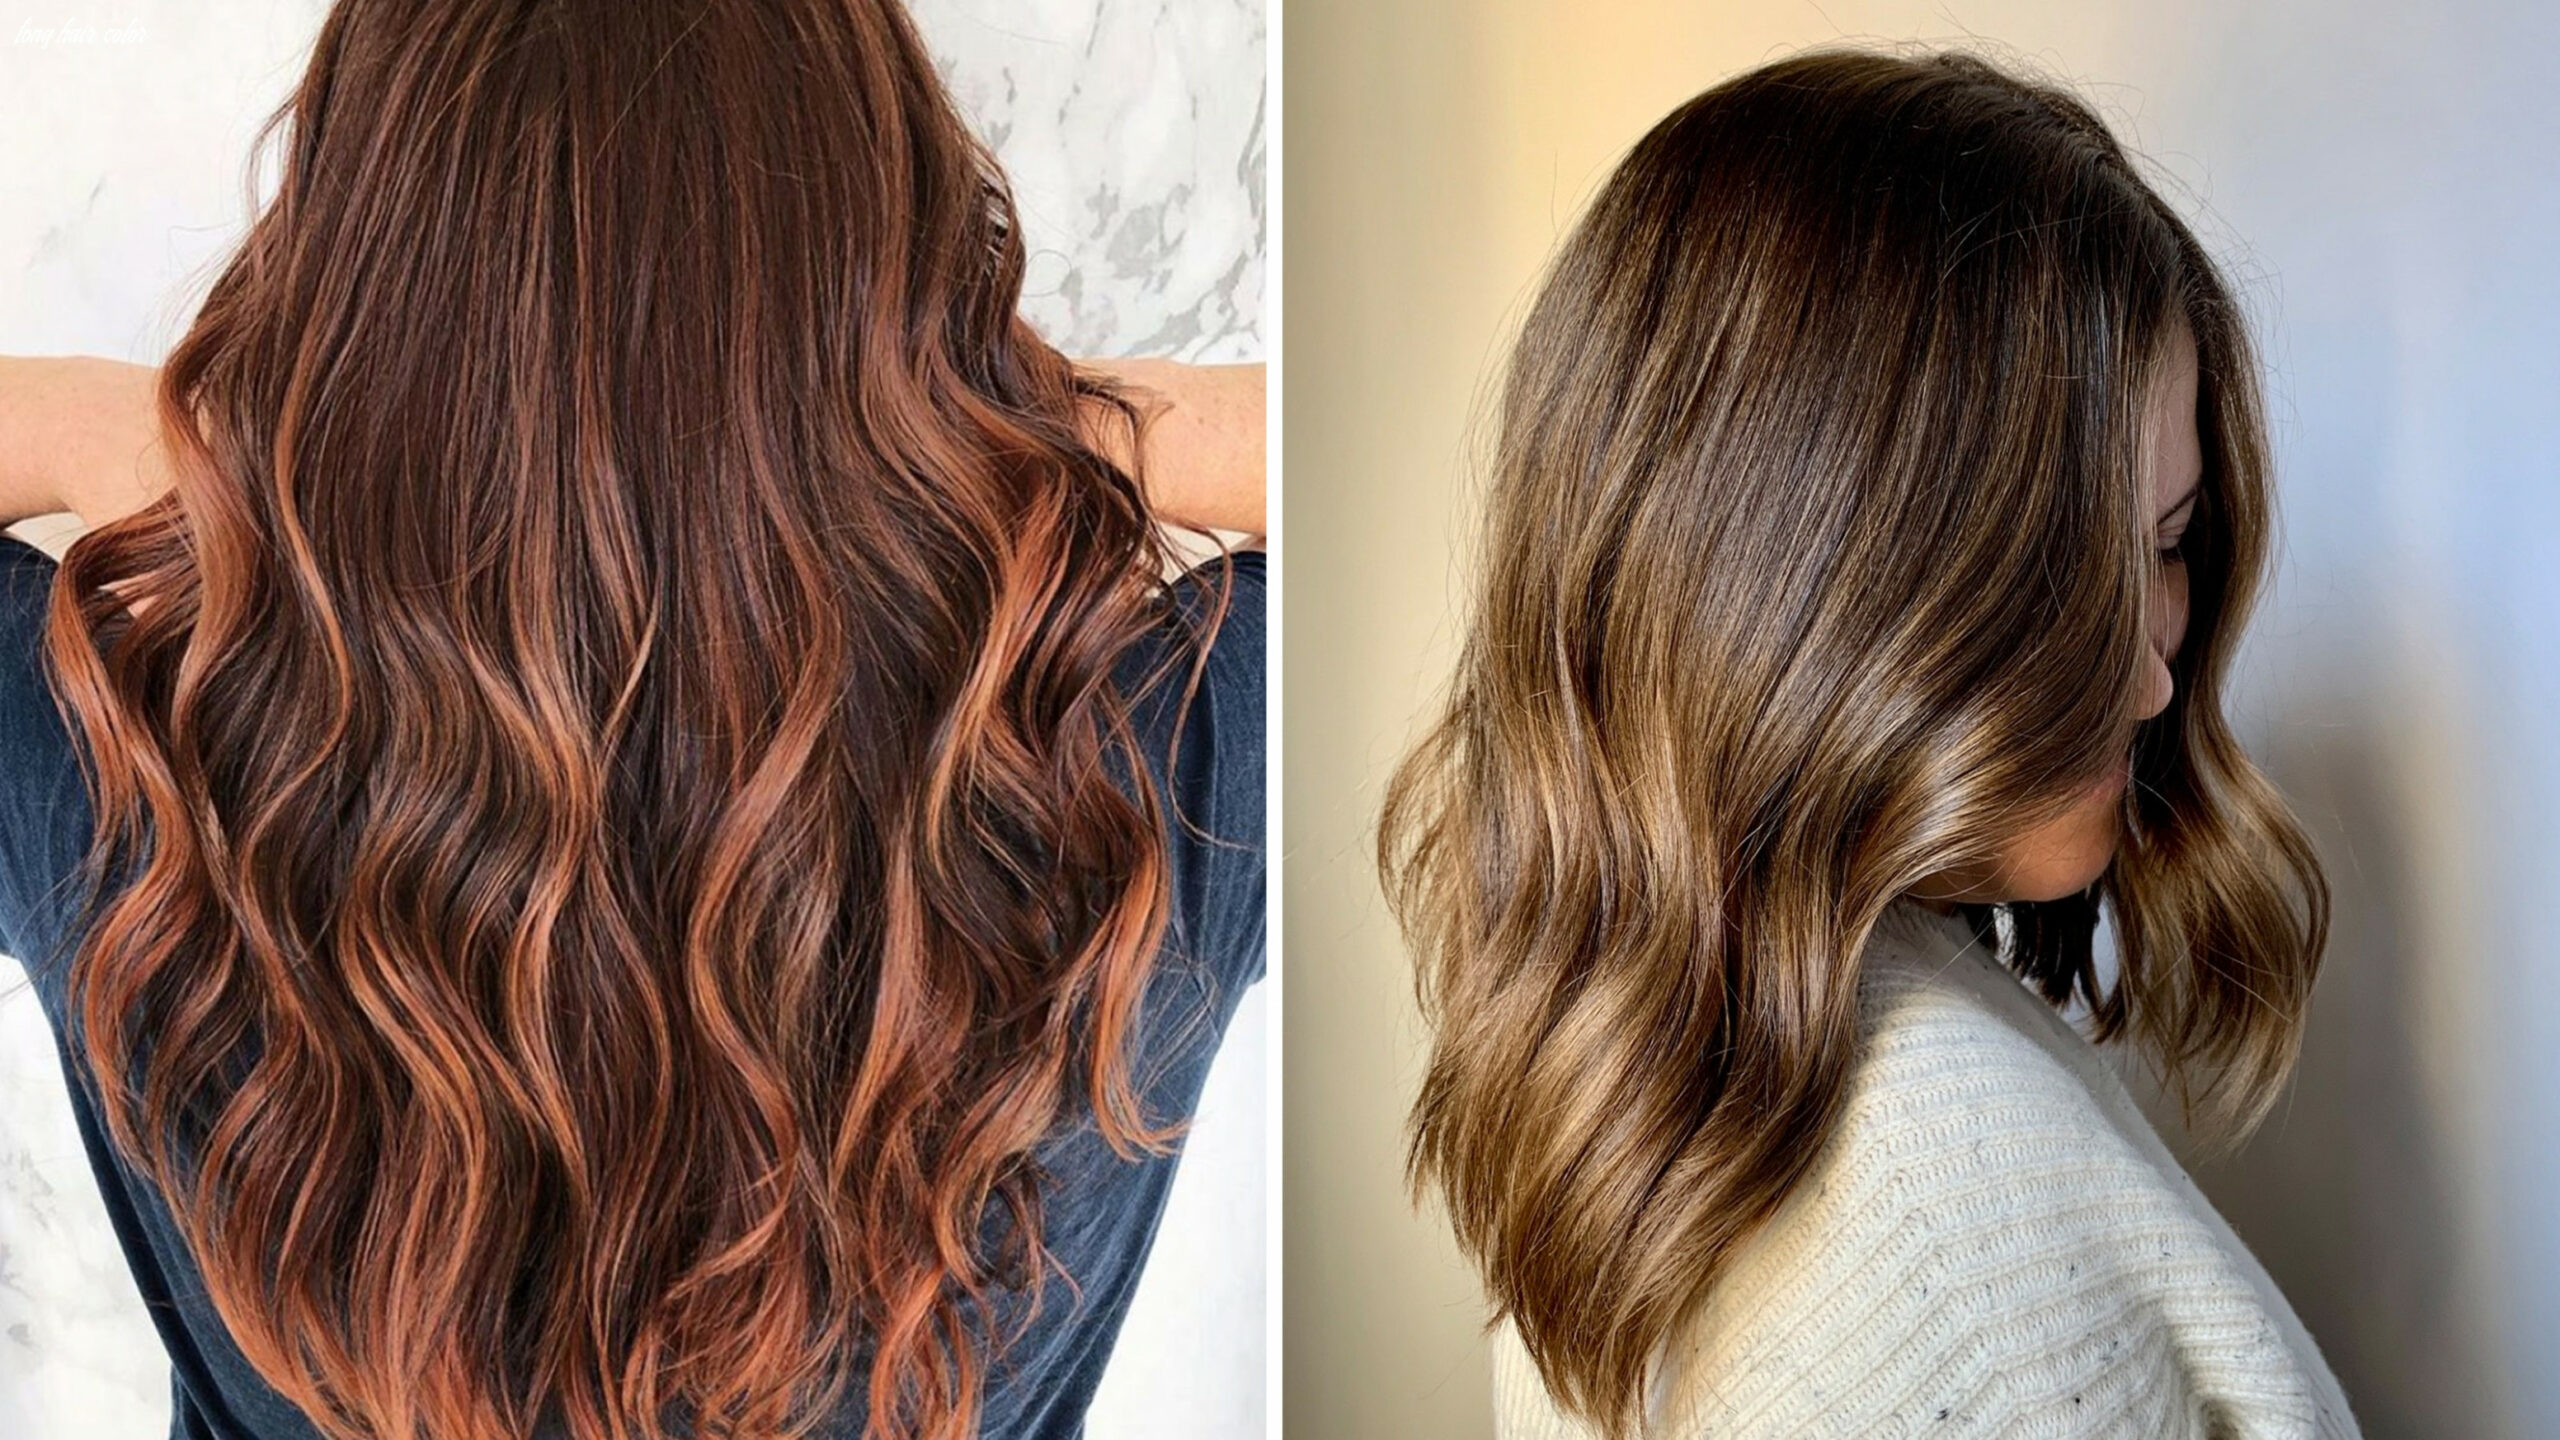 10 best hair color trends and ideas for 1010 | glamour long hair color